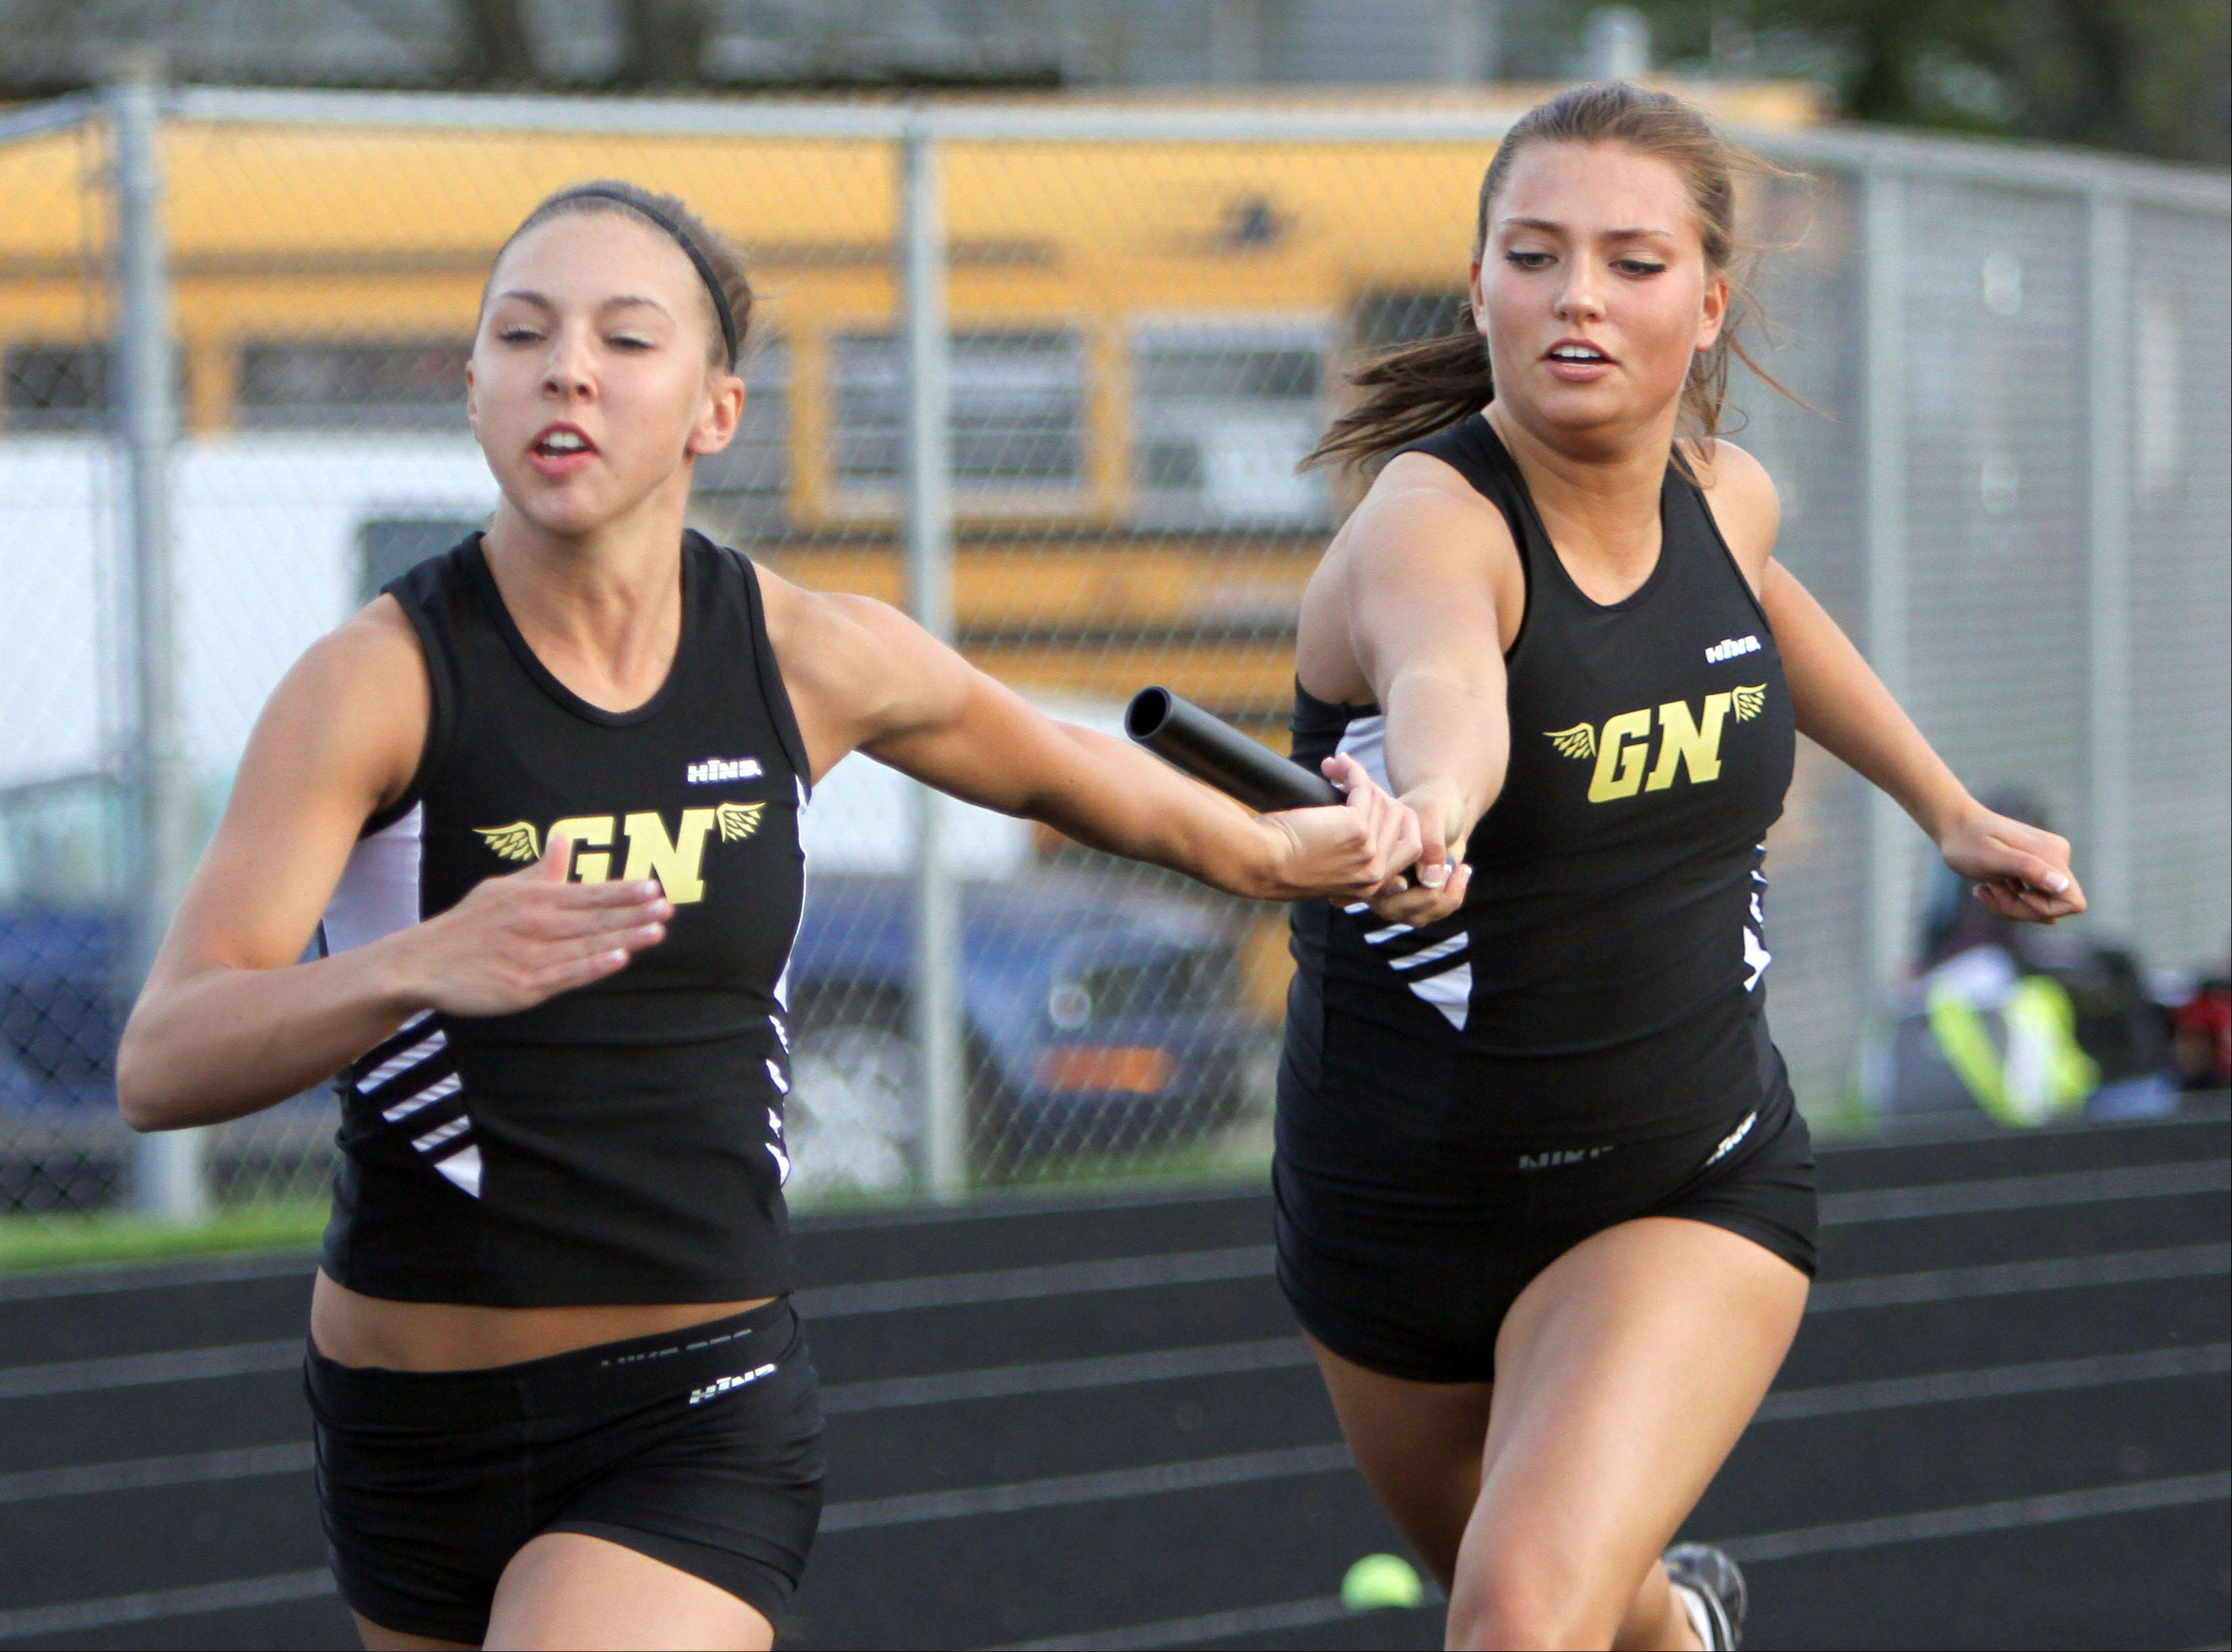 Grayslake North's Pam Bazan, right, hands off to Sarah Schmitke in the 400-meter relay during the Fox Valley Conference girls track meet Monday at Grayslake Central High School.